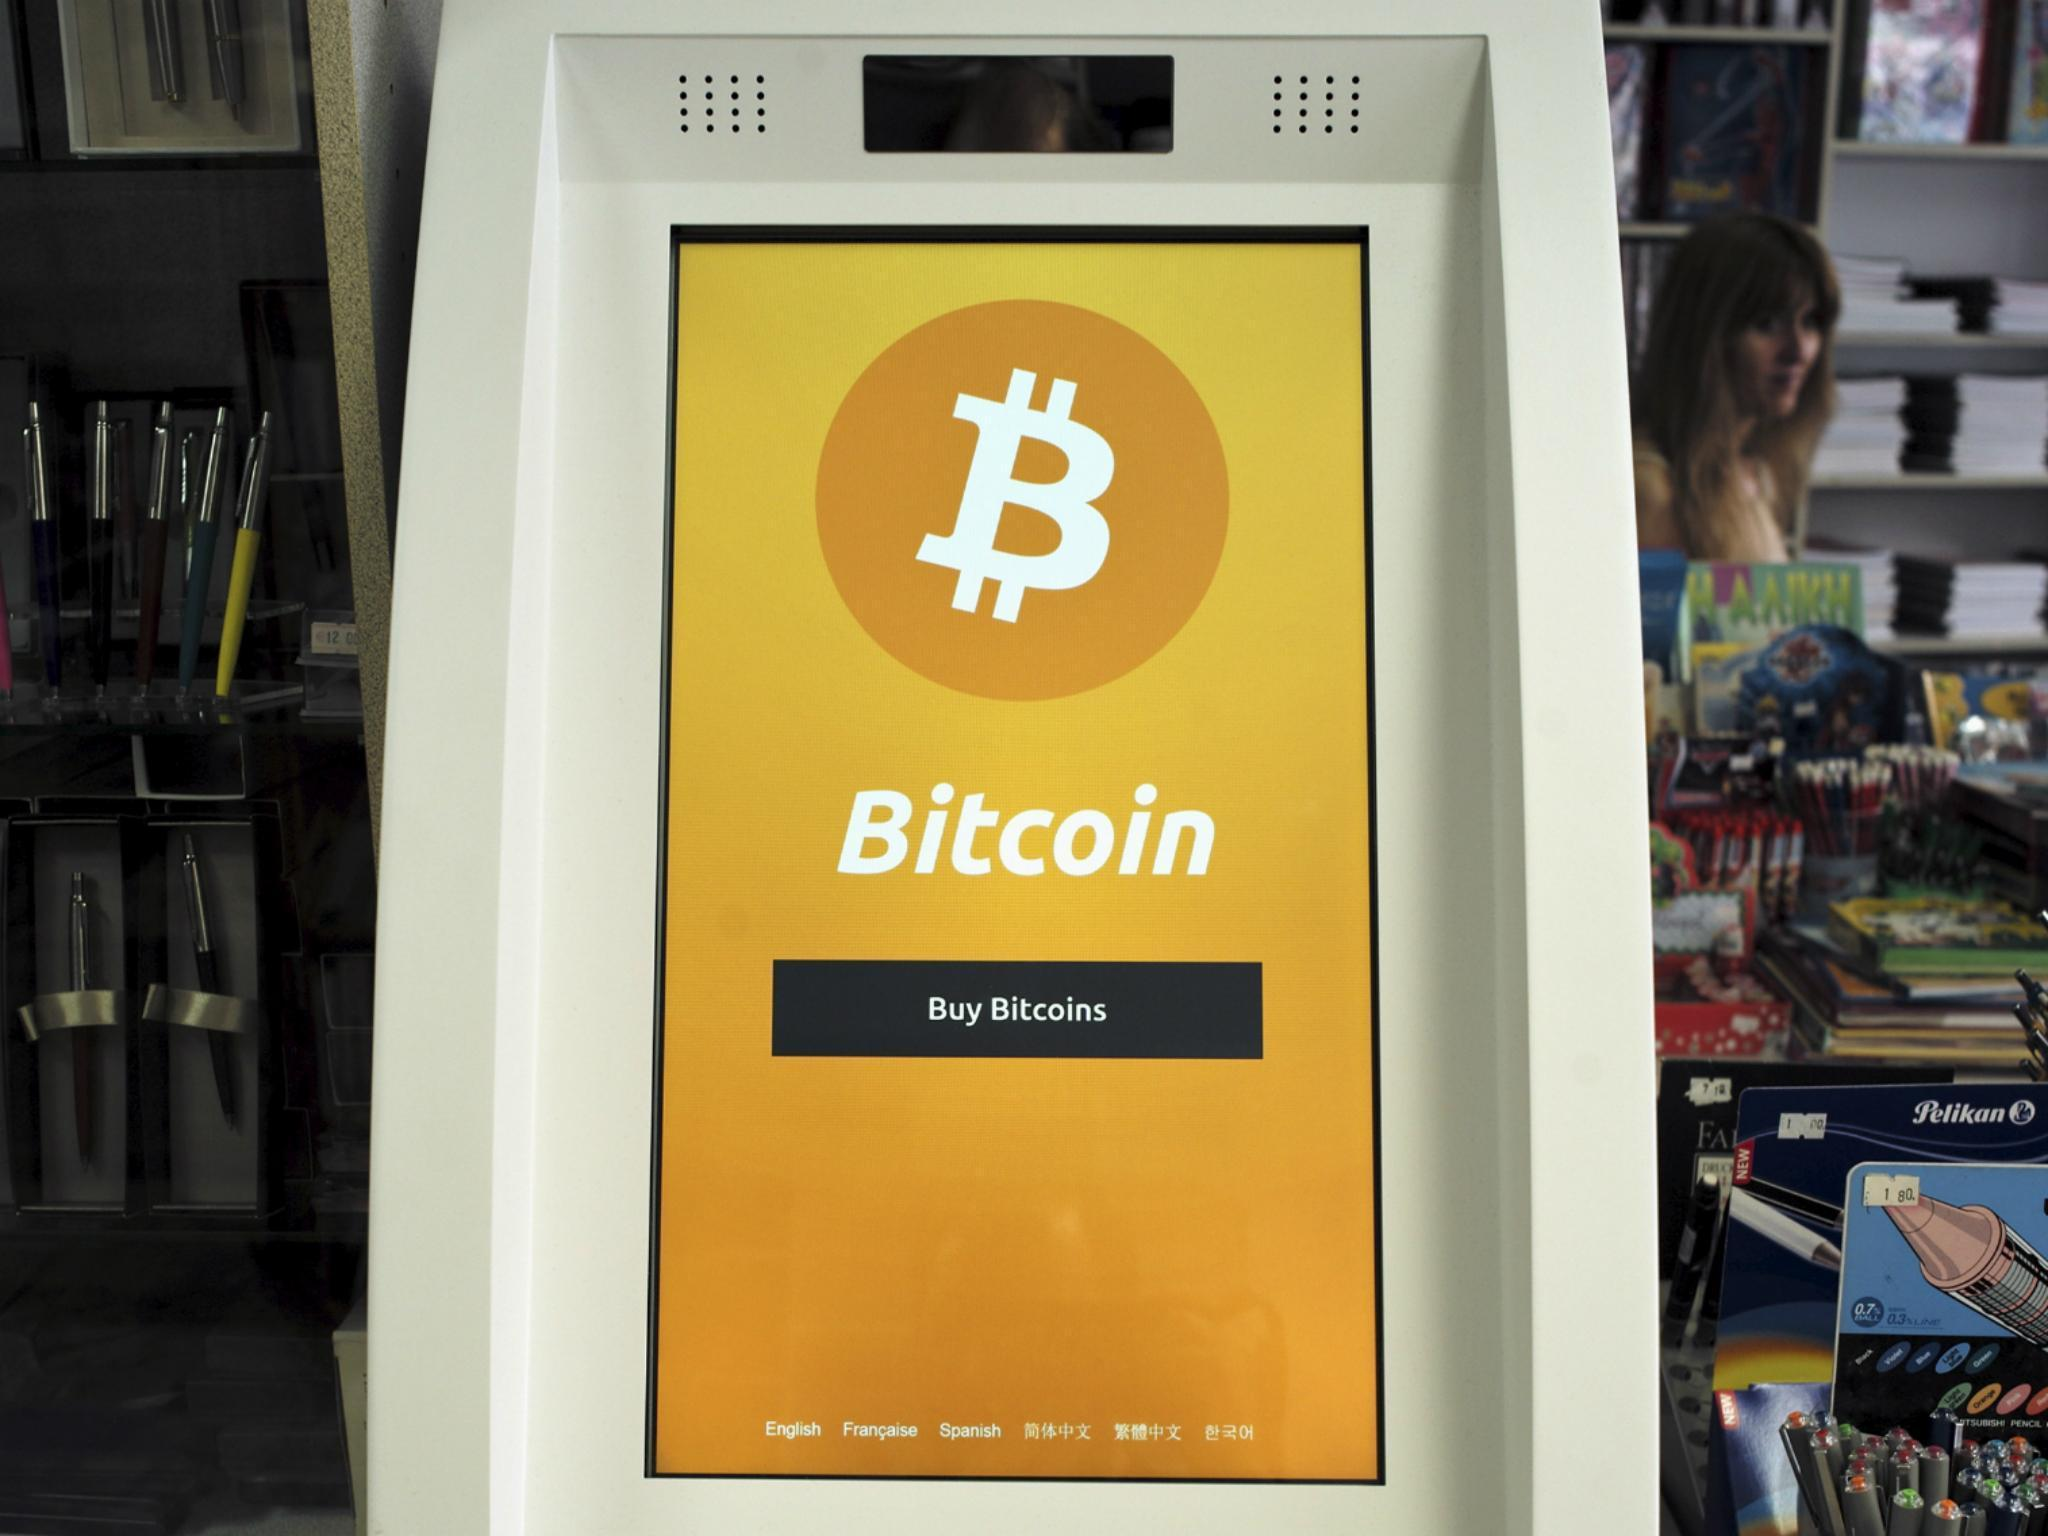 The first bitcoin ATM appears